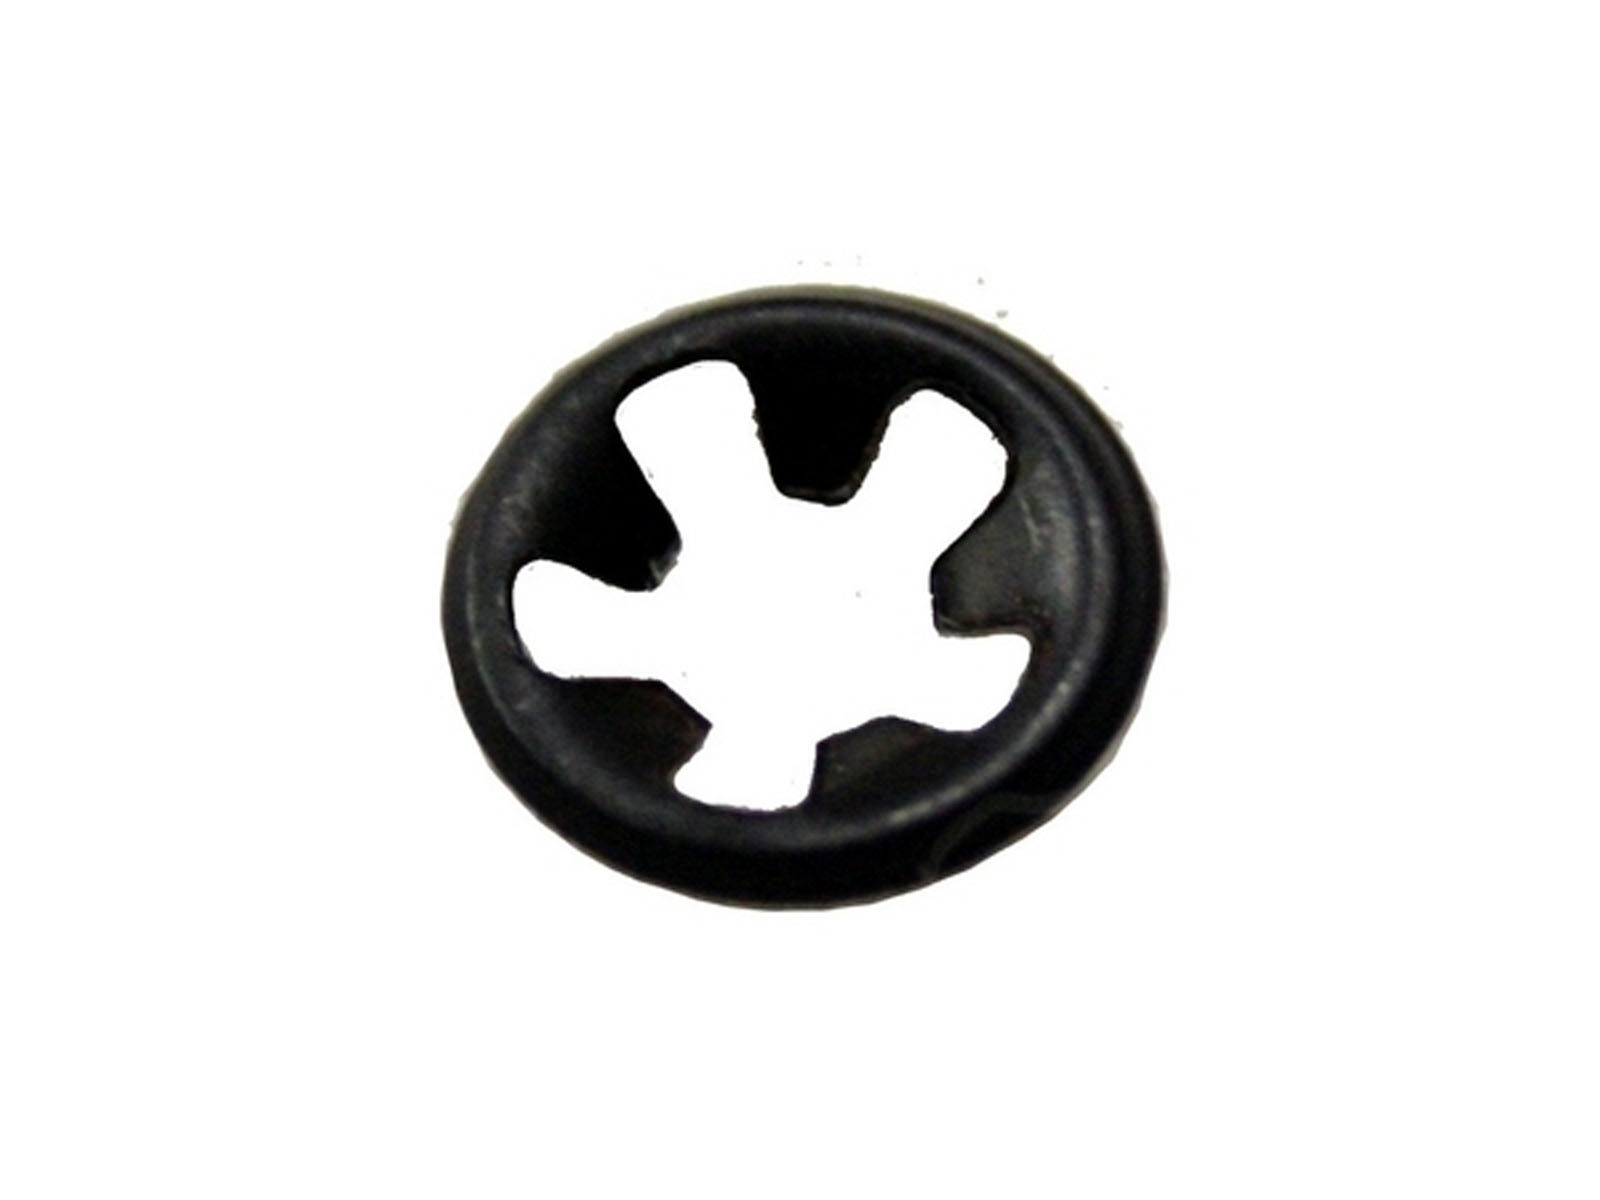 Lada Niva / 2101-2107 Internal Tooth Lock Washer For Fixing Emblem Or Badge 4mm